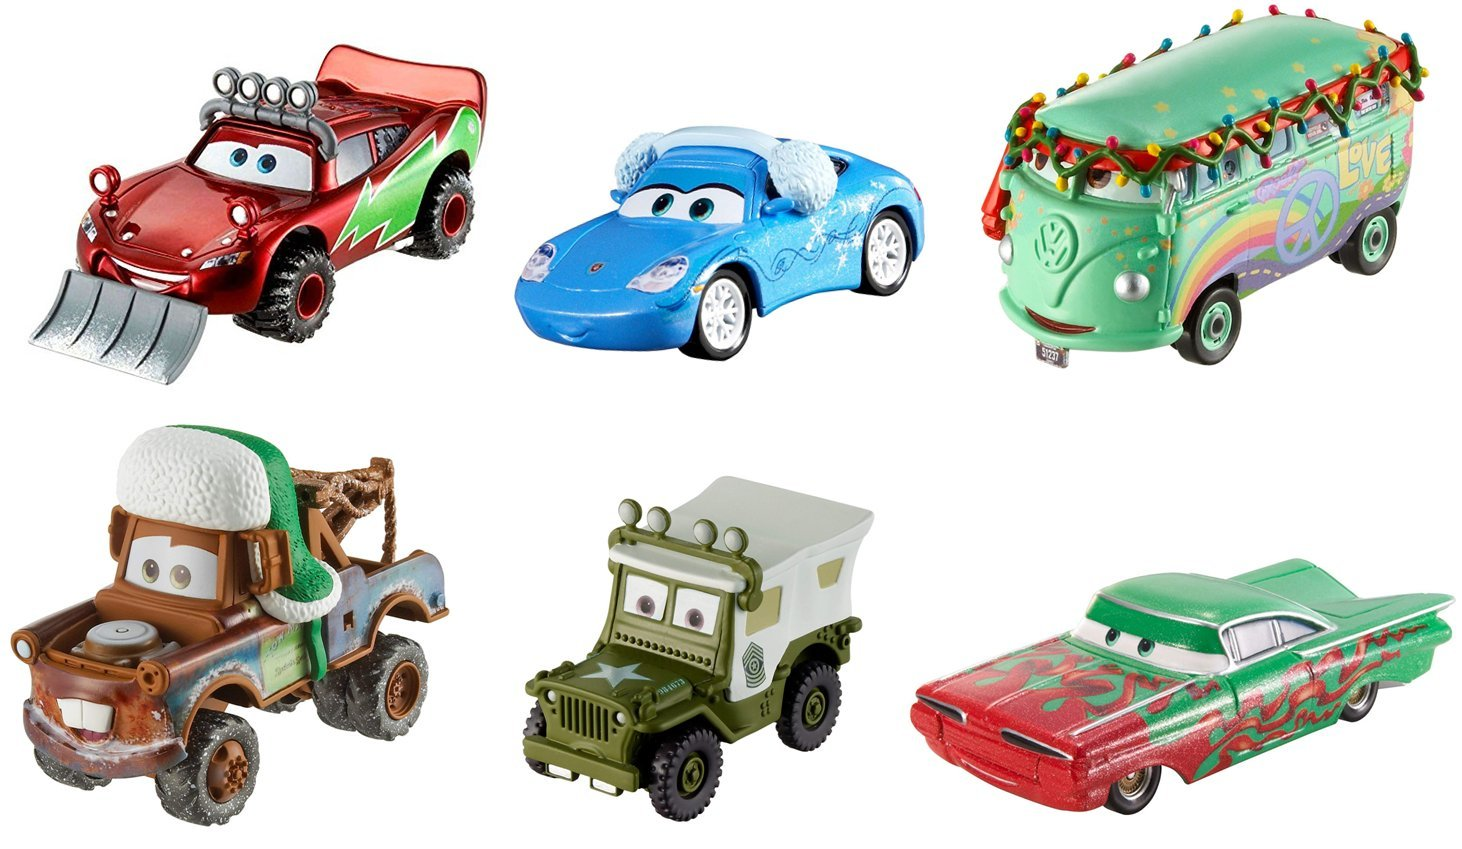 Disney Pixar Cars Diecast Holiday Collection (6 Pack) Lightning McQueen, Mater, Sarge, Fillmore, Ramone, & Sally Combined Brands